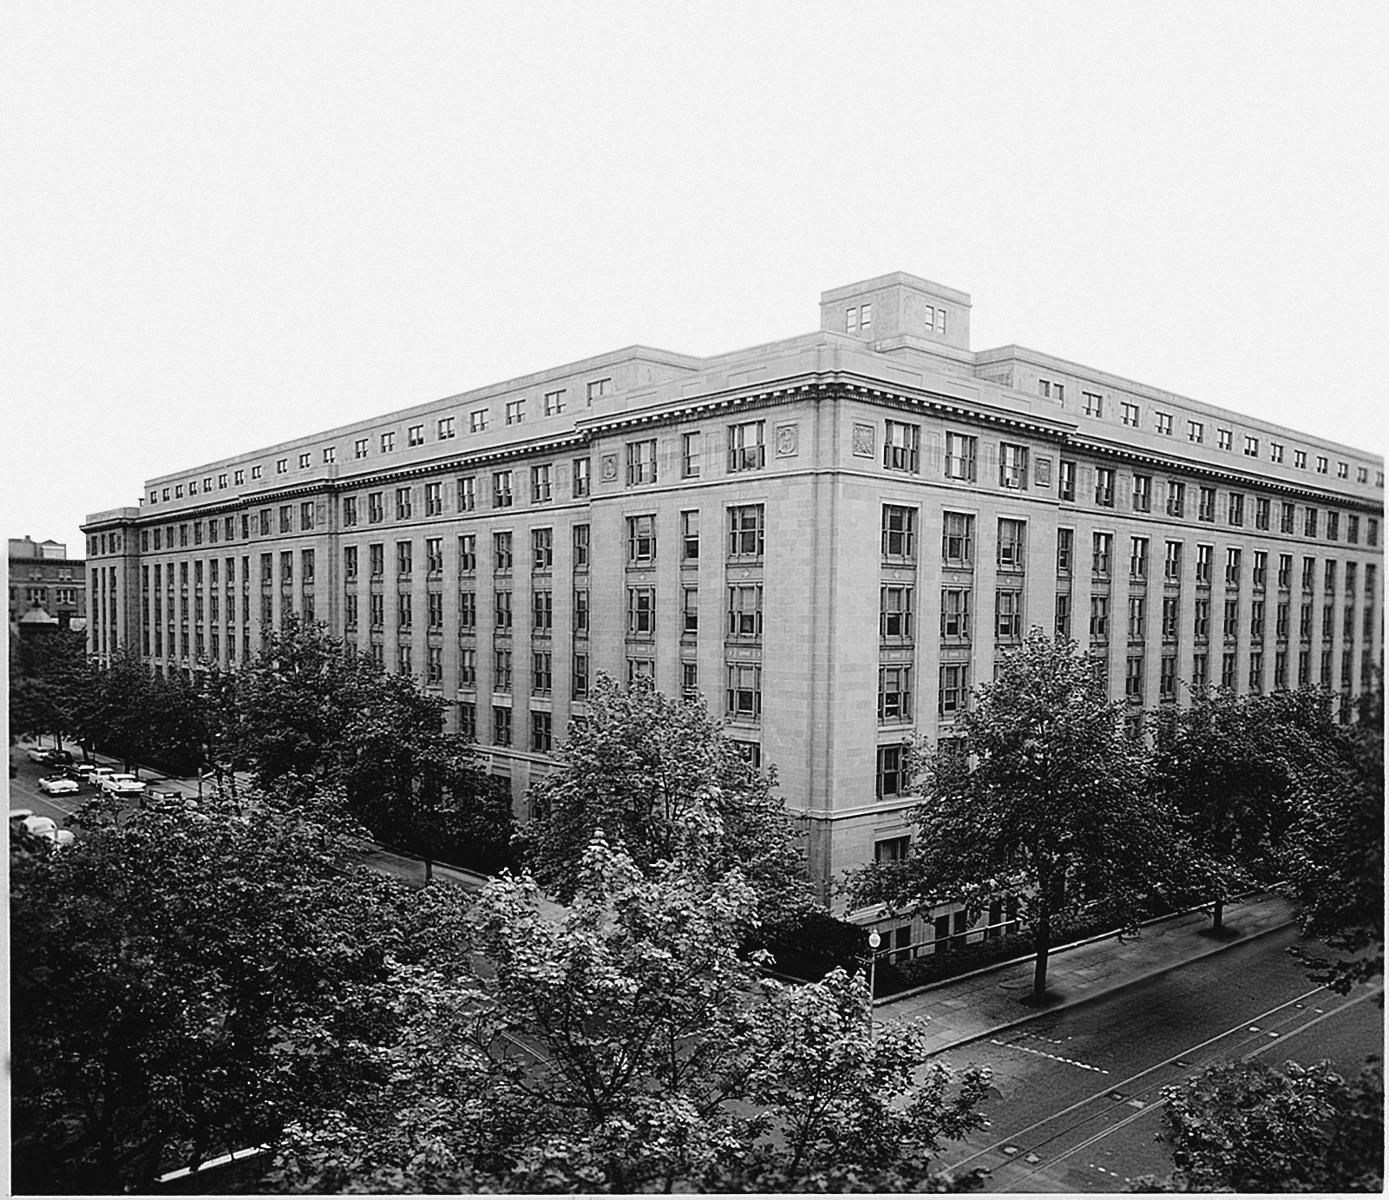 U.S. General Services Administration Building, Washington, DC